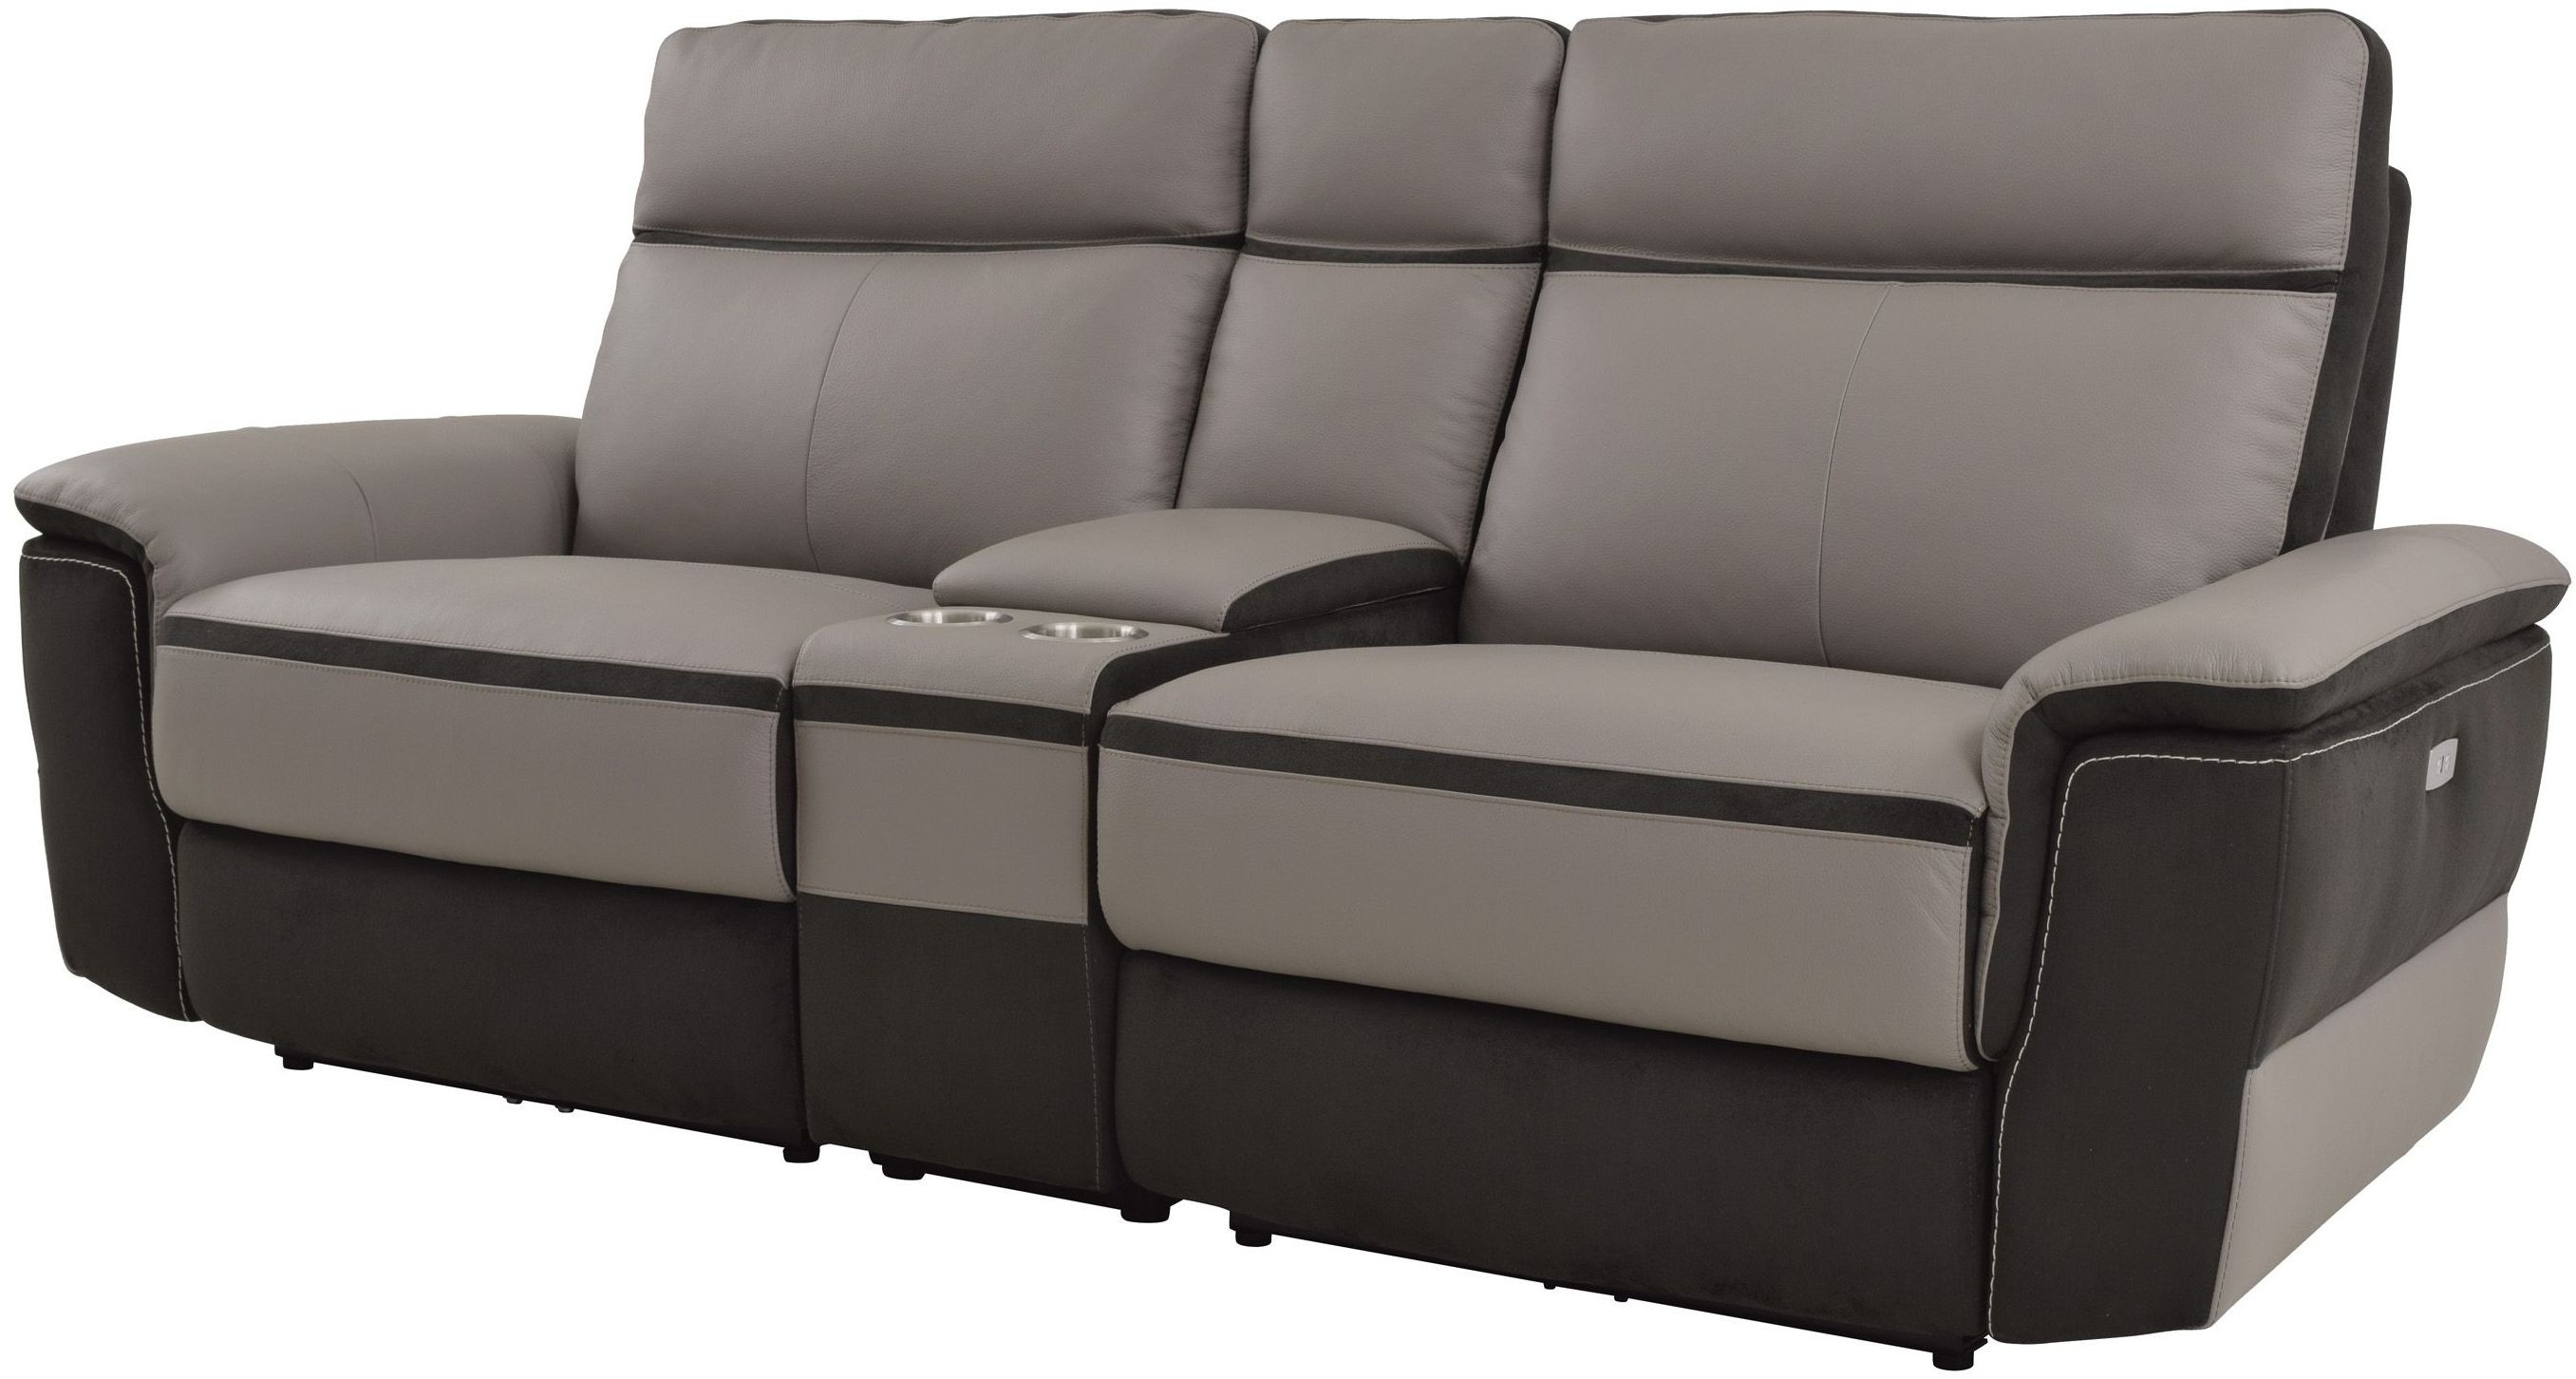 Laertes Taupe Power Double Reclining Console Loveseat From Homelegance Coleman Furniture